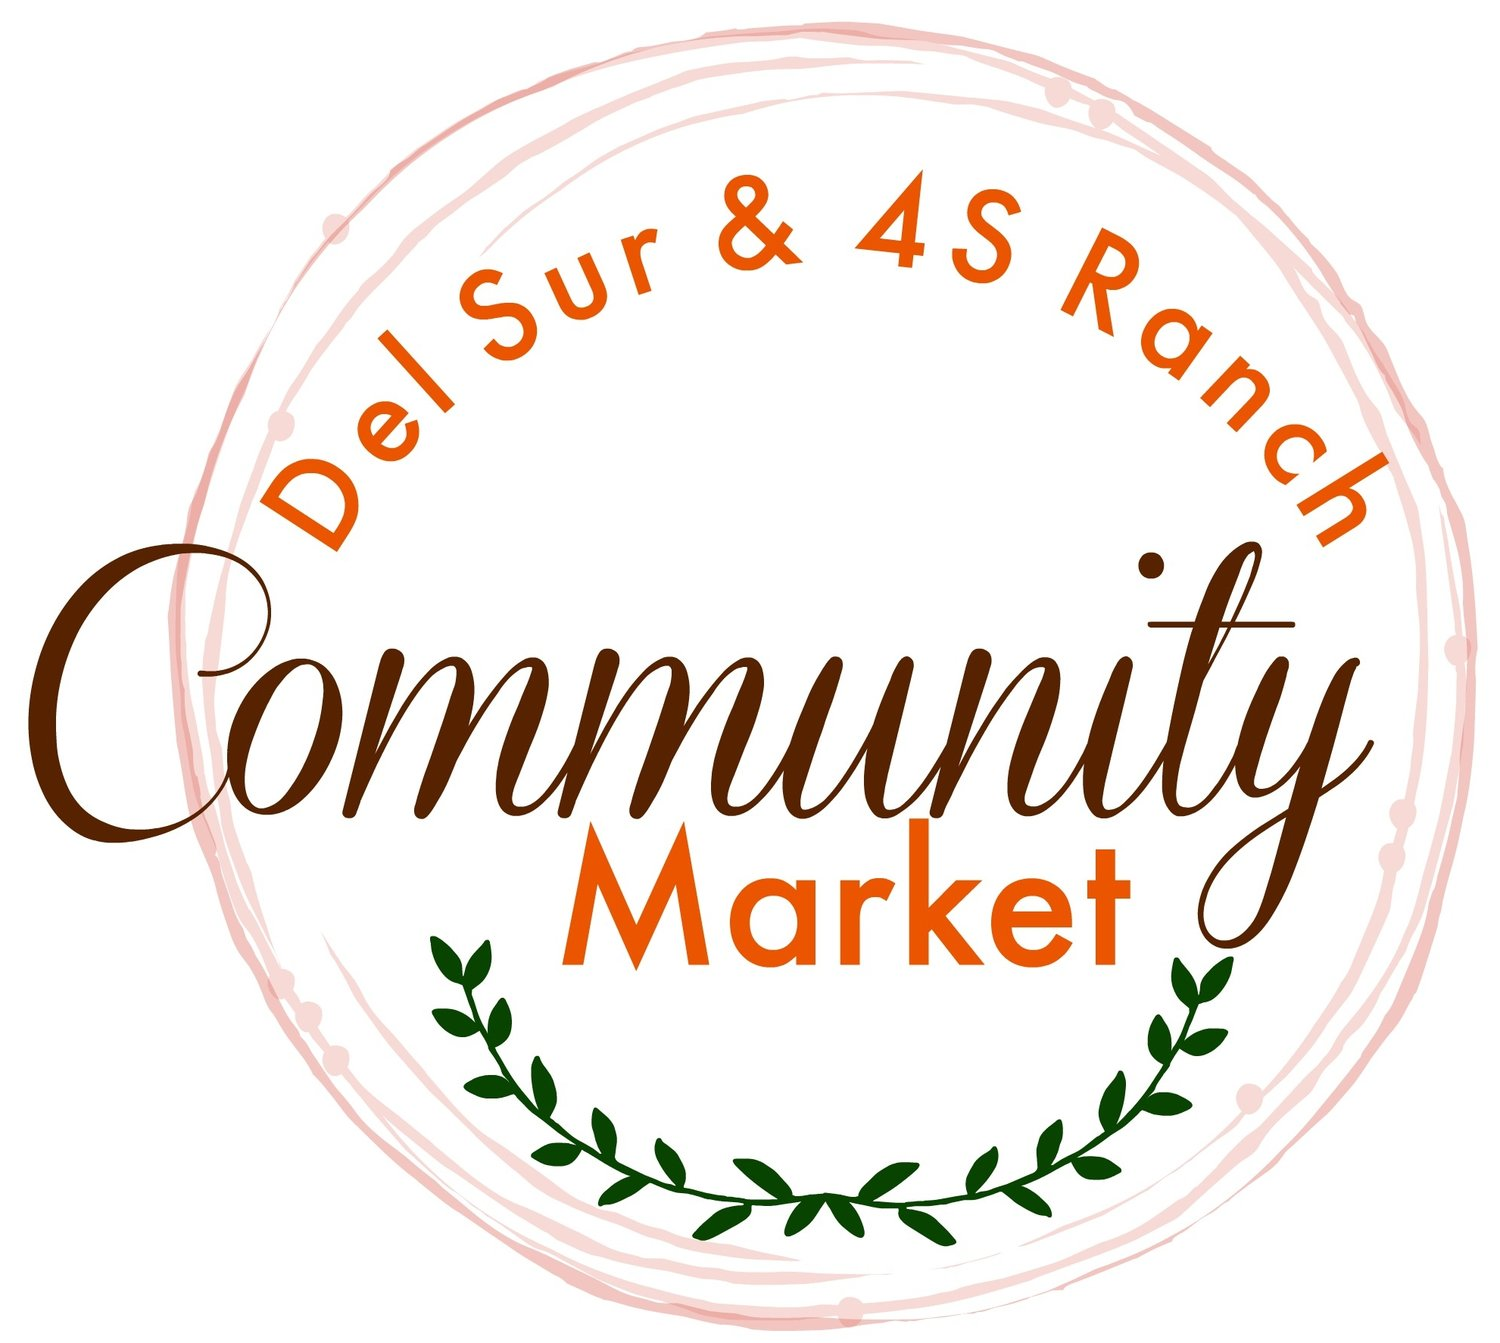 Del Sur & 4S Ranch Community Market